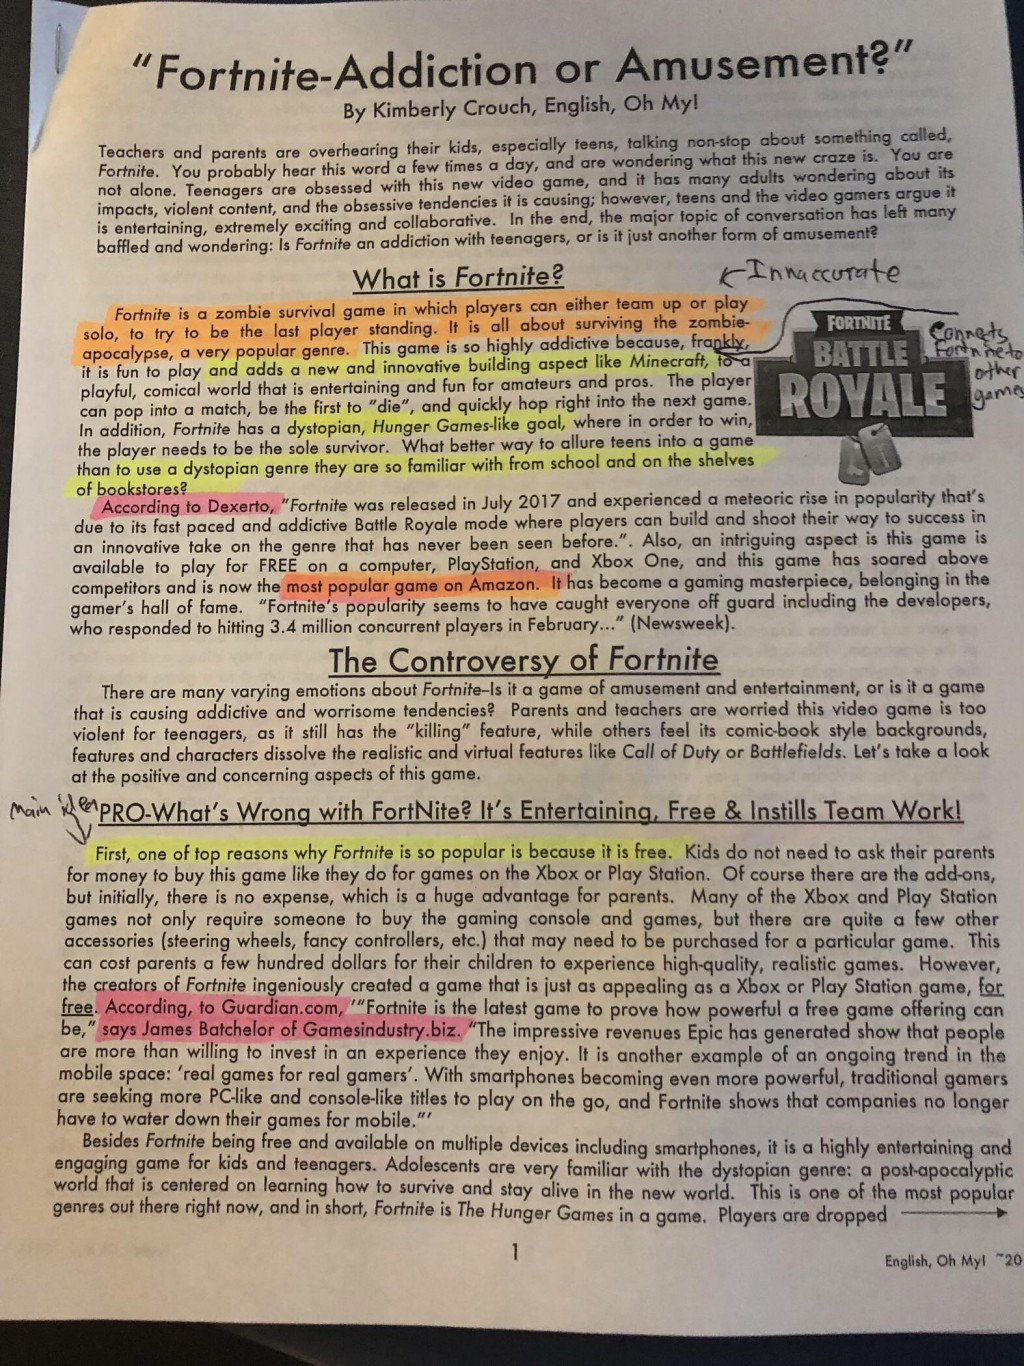 015 G47dmb8a0jk11 How To Annotate An Essay Wondrous A Movie In Critical Large